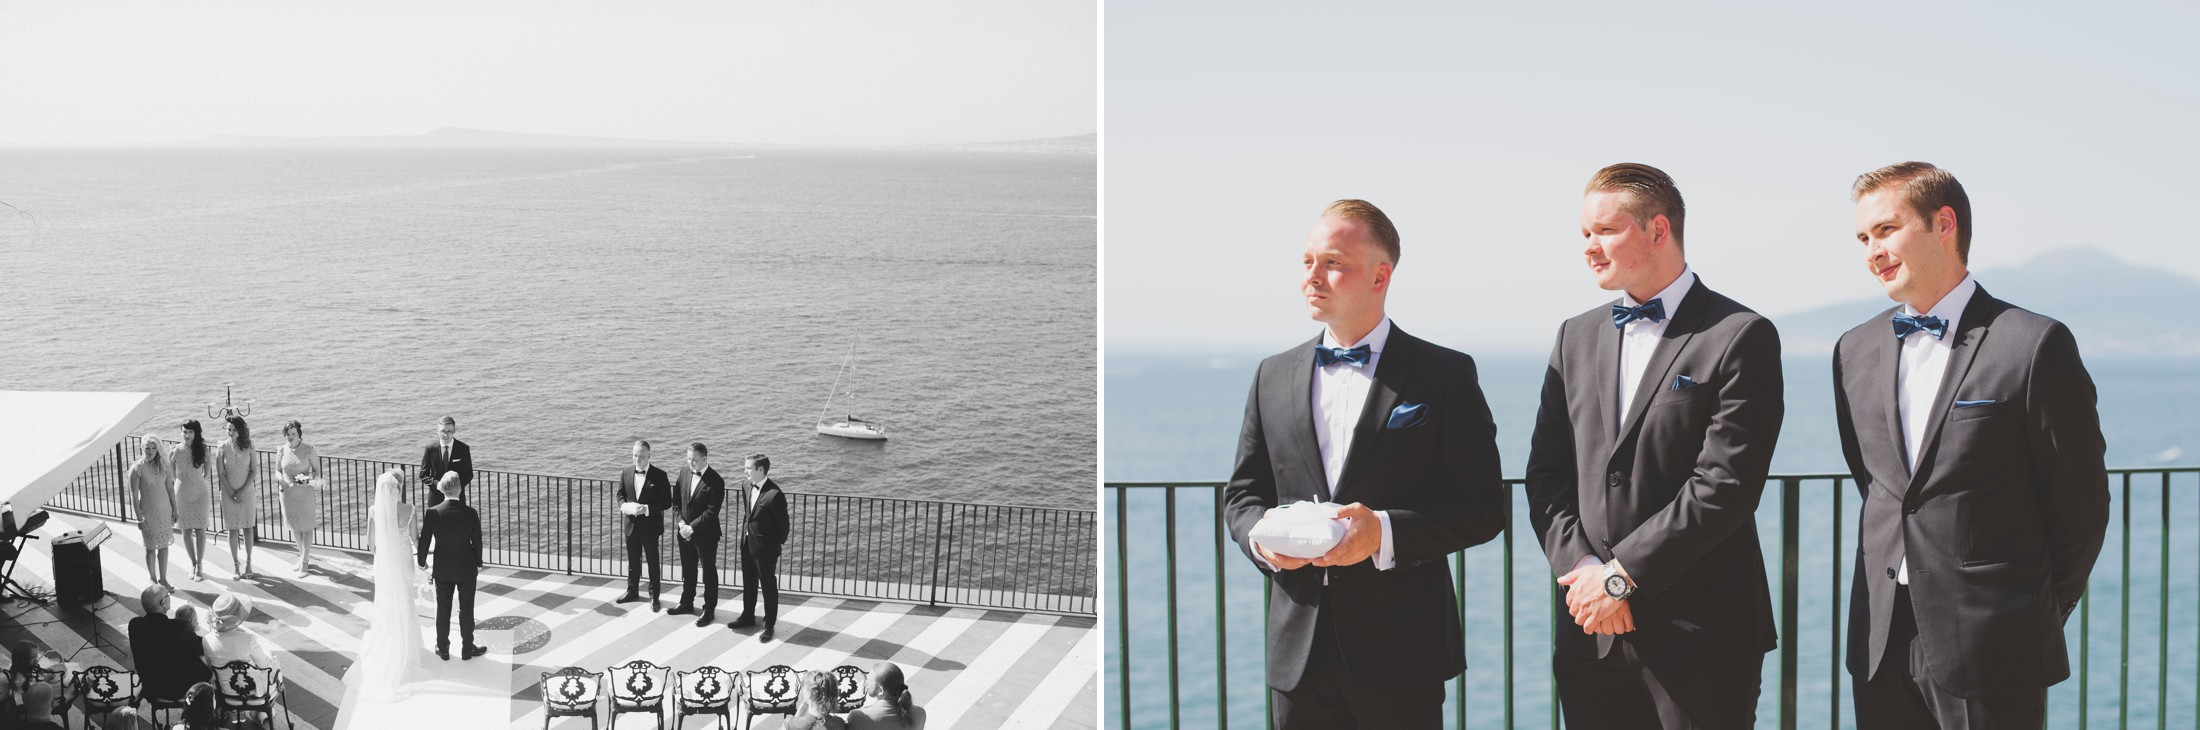 seaside wedding ceremony collage